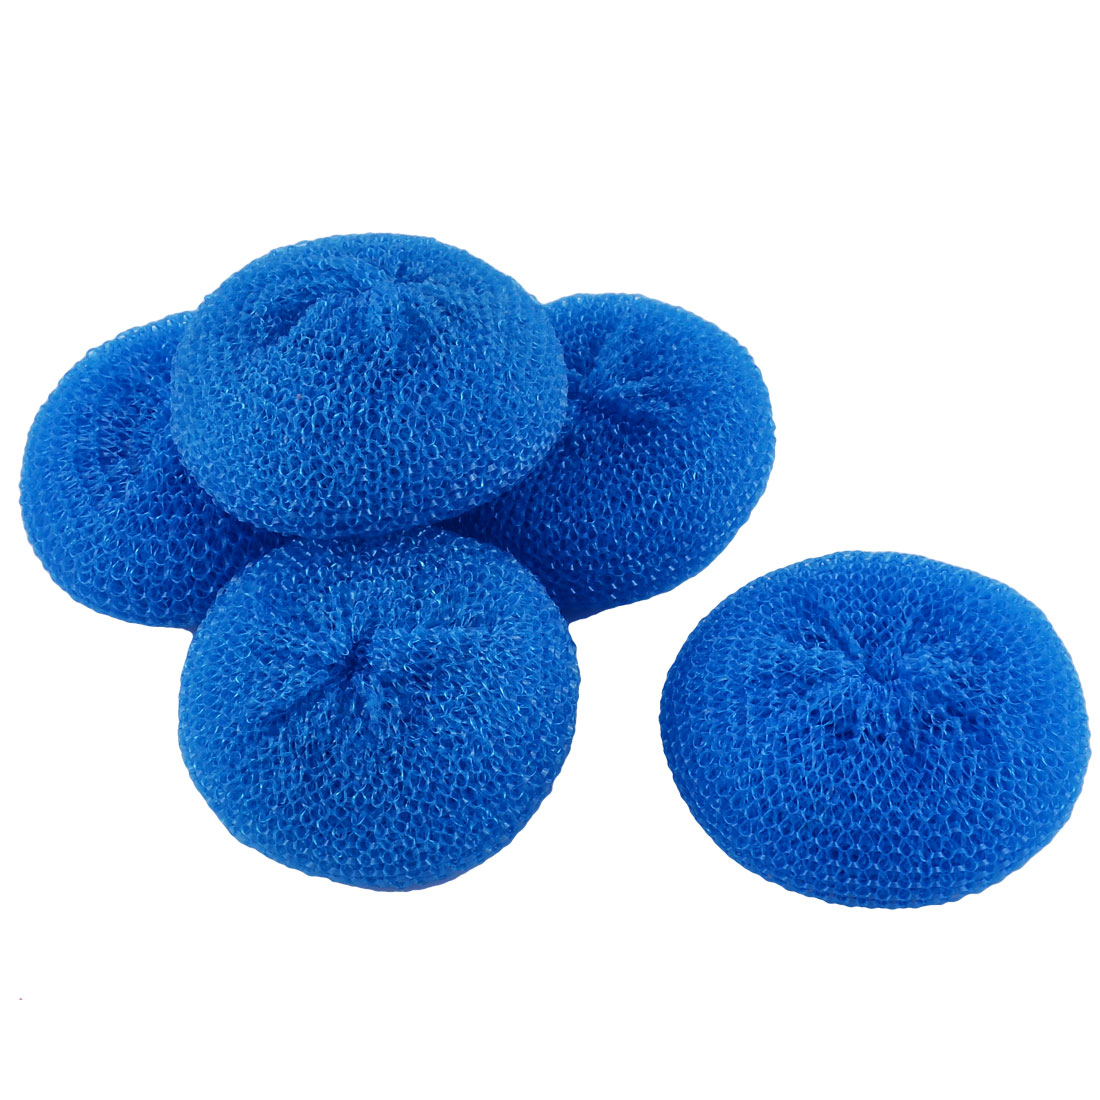 Unique Bargains 5pcs Blue Kitchen Dish Pot Pan Plastic Mesh Scouring Washing Cleaning Cleaner Scrubber Pad